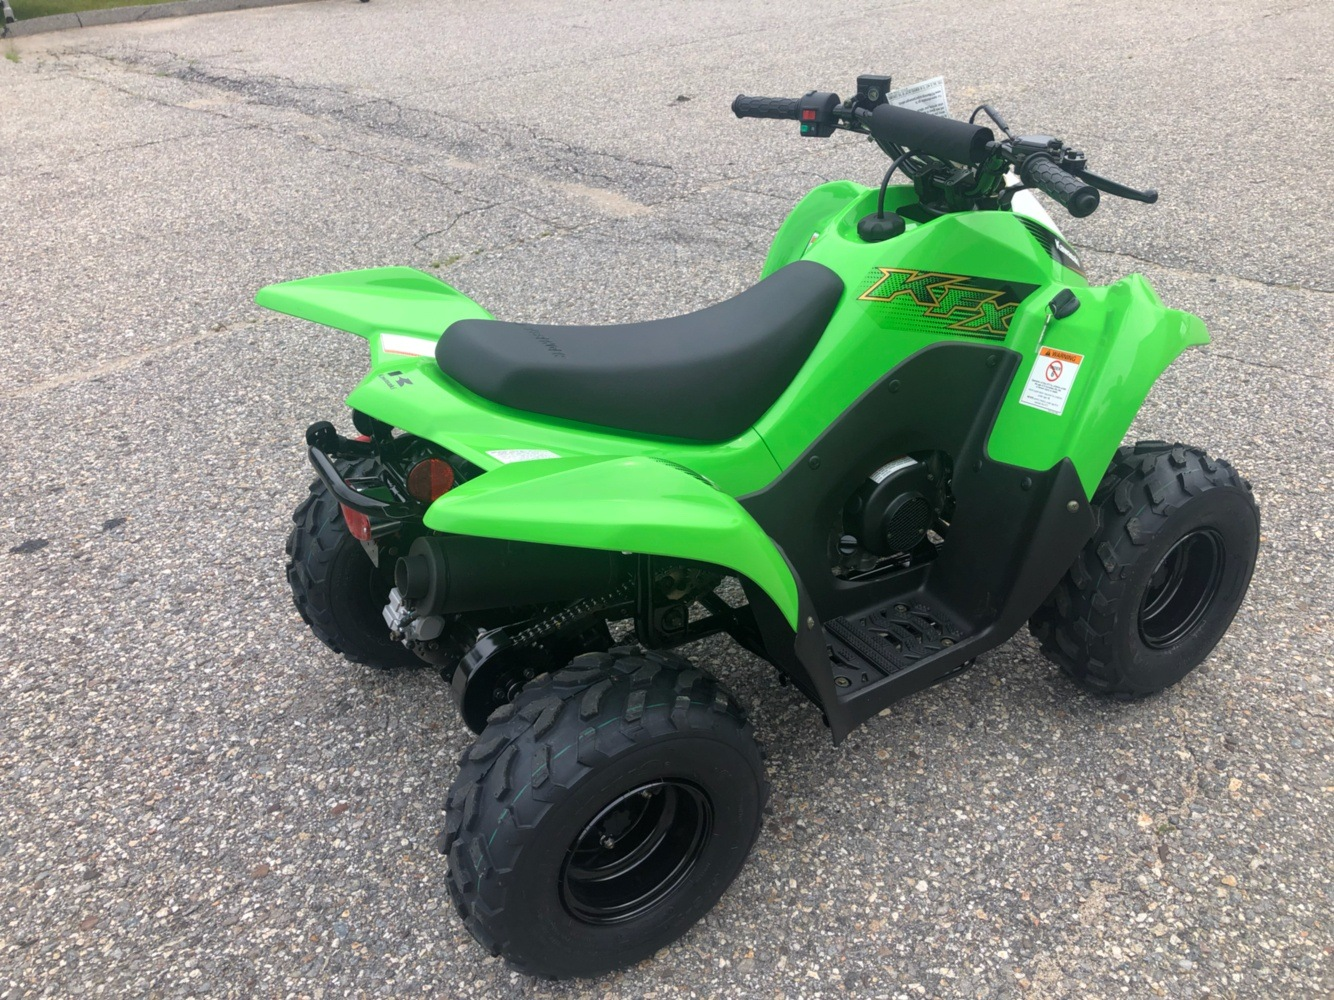 2020 Kawasaki KFX 50 in Lebanon, Maine - Photo 5